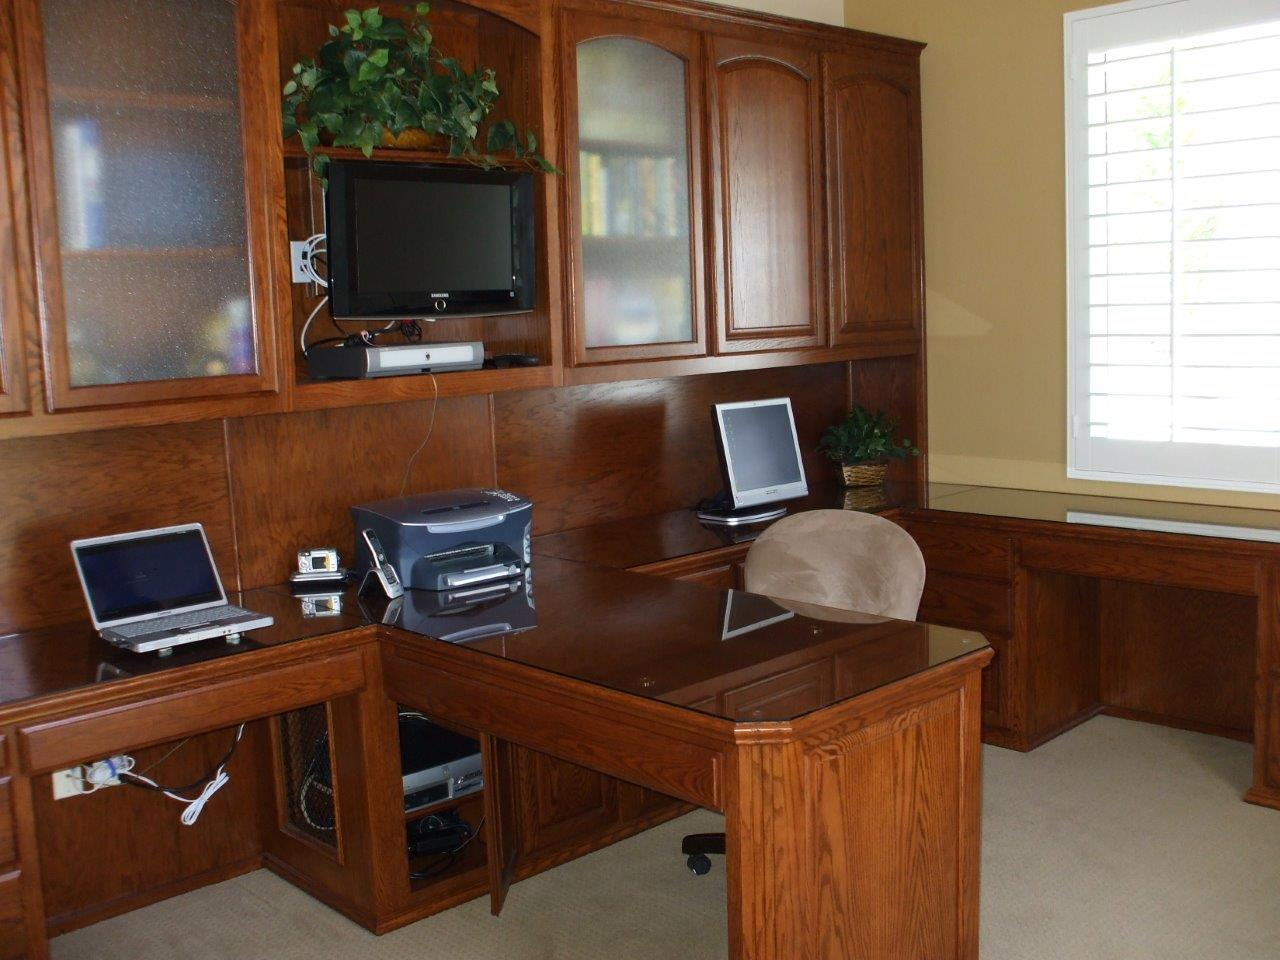 Custom home office furniture can provide maximum storage and organization. Custom Home Office Cabinets and Built In Desks